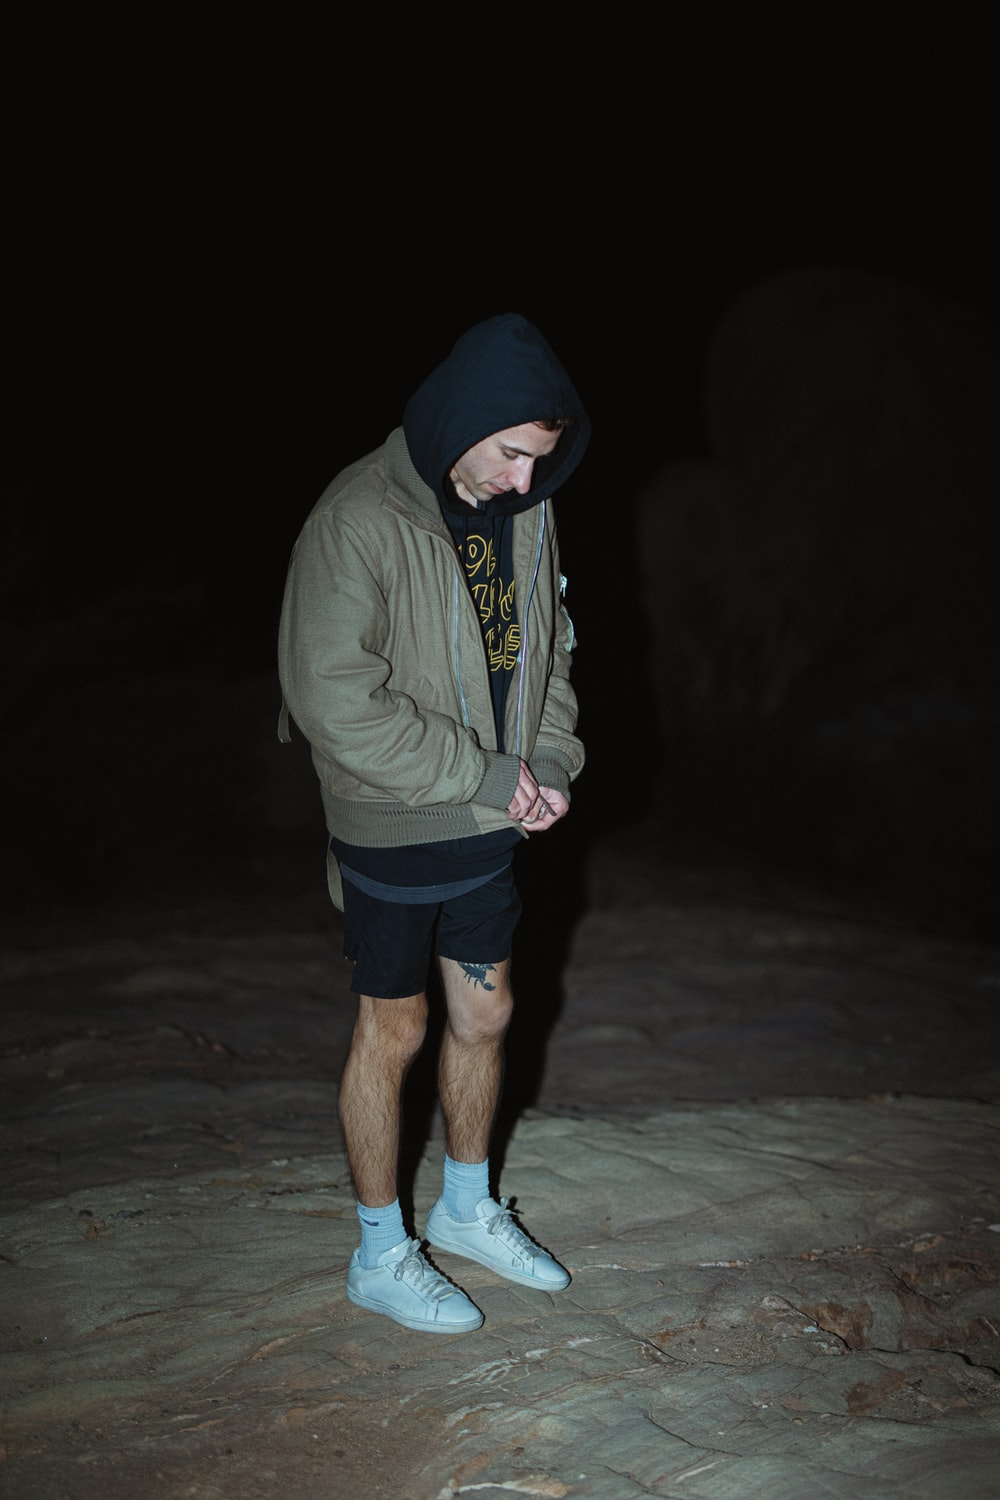 man in gray hoodie and black shorts standing on sand during nighttime